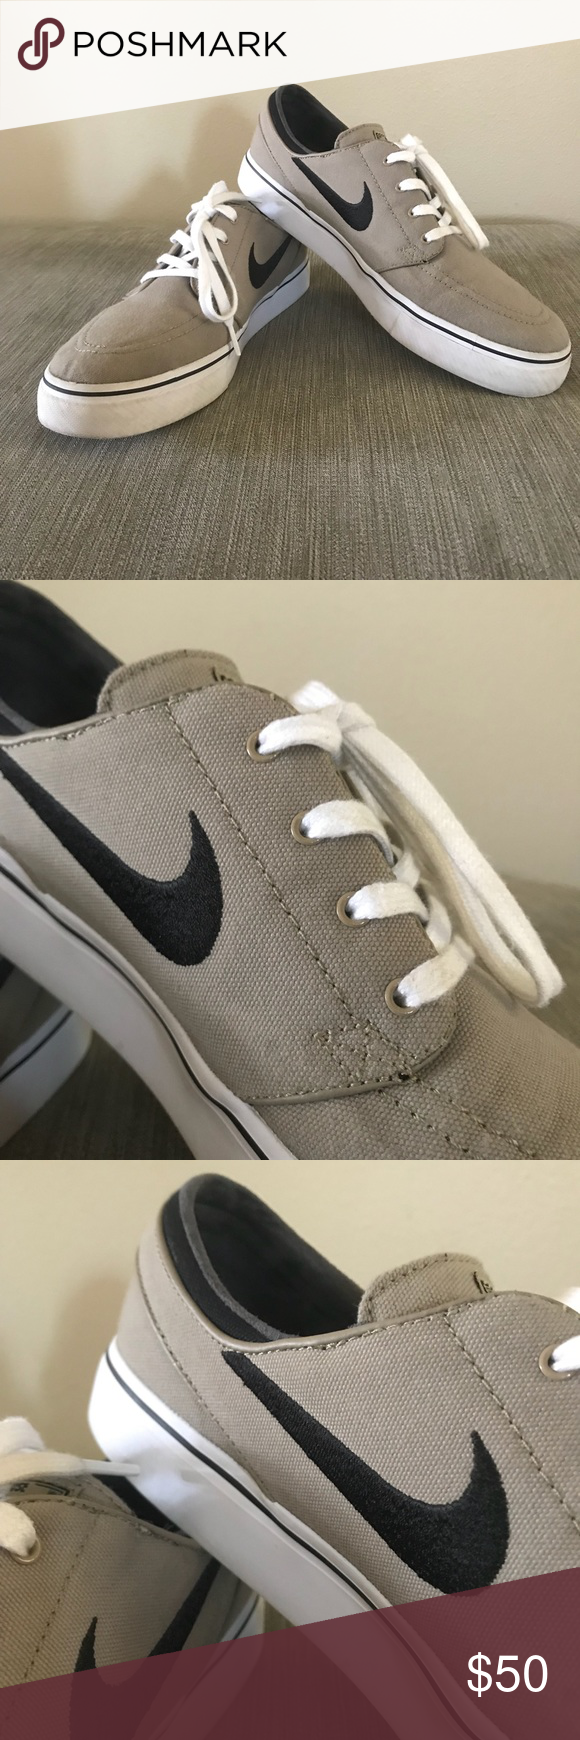 Nike Zoom Air Stefan Janoski Skate Shoes EUC, worn maybe twice, see photos , tan with black swoosh. Nike Shoes Sneakers